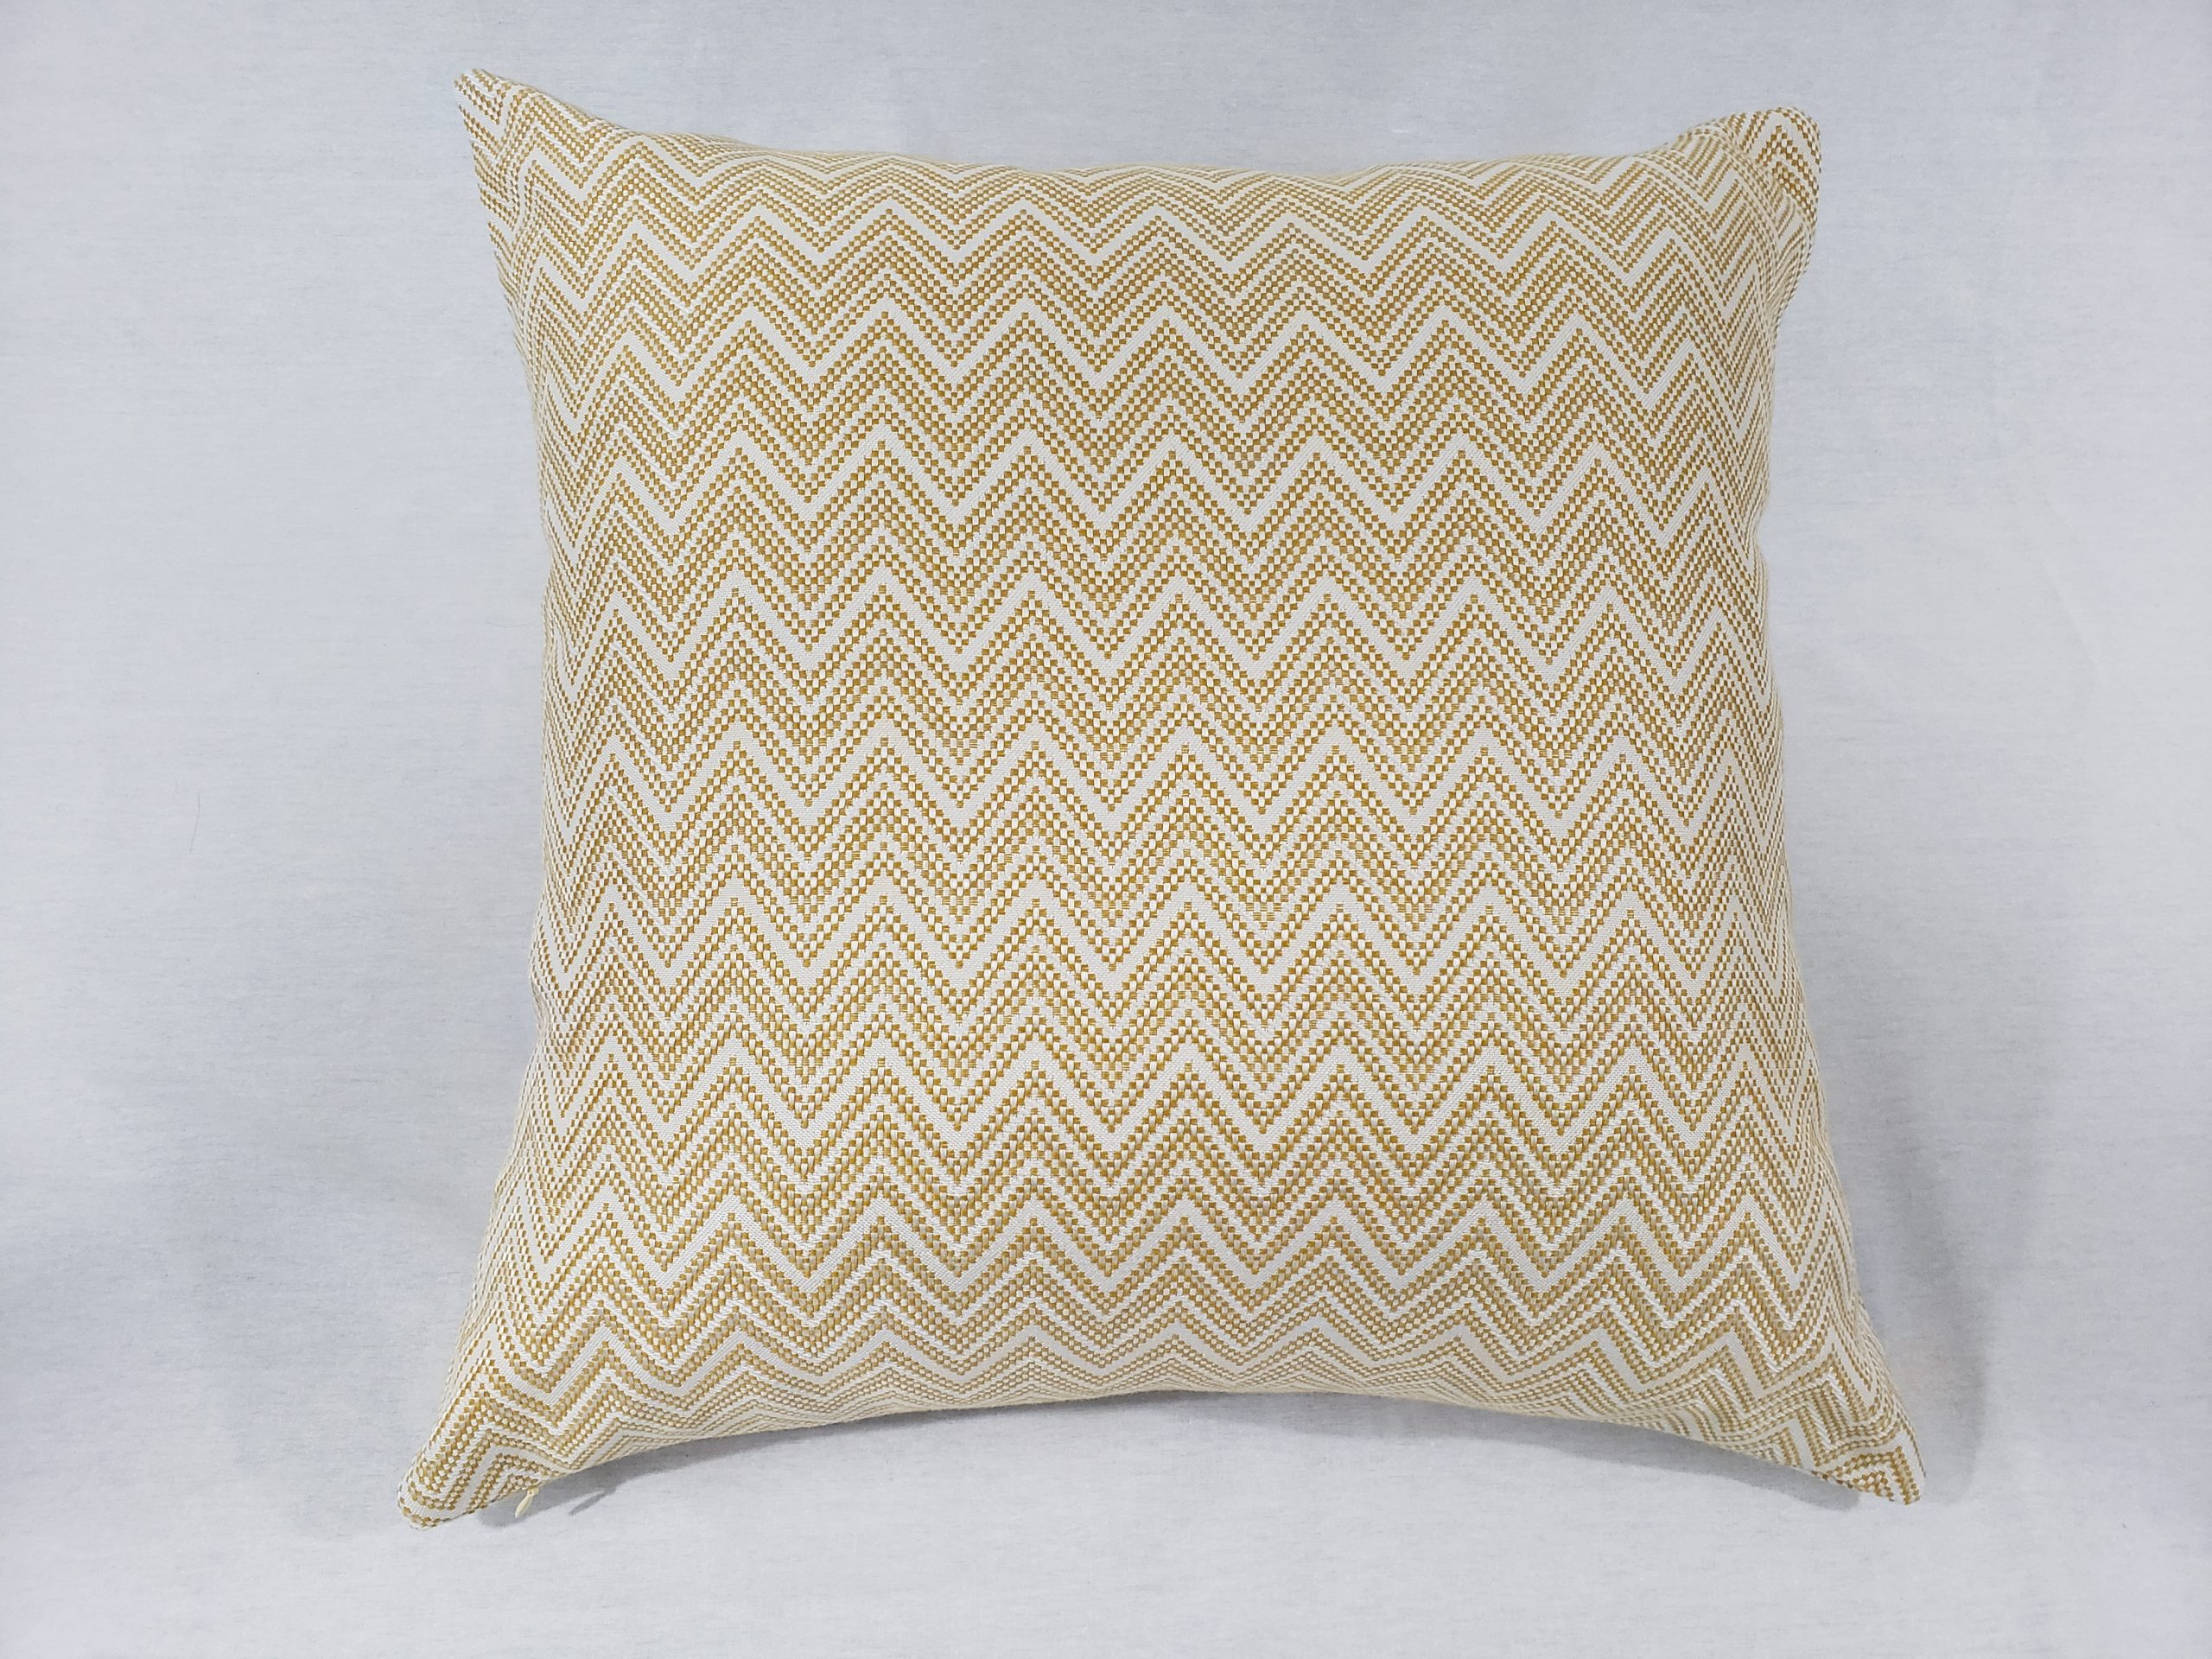 Yellow Chevron cushion made with upholstery grade fabric